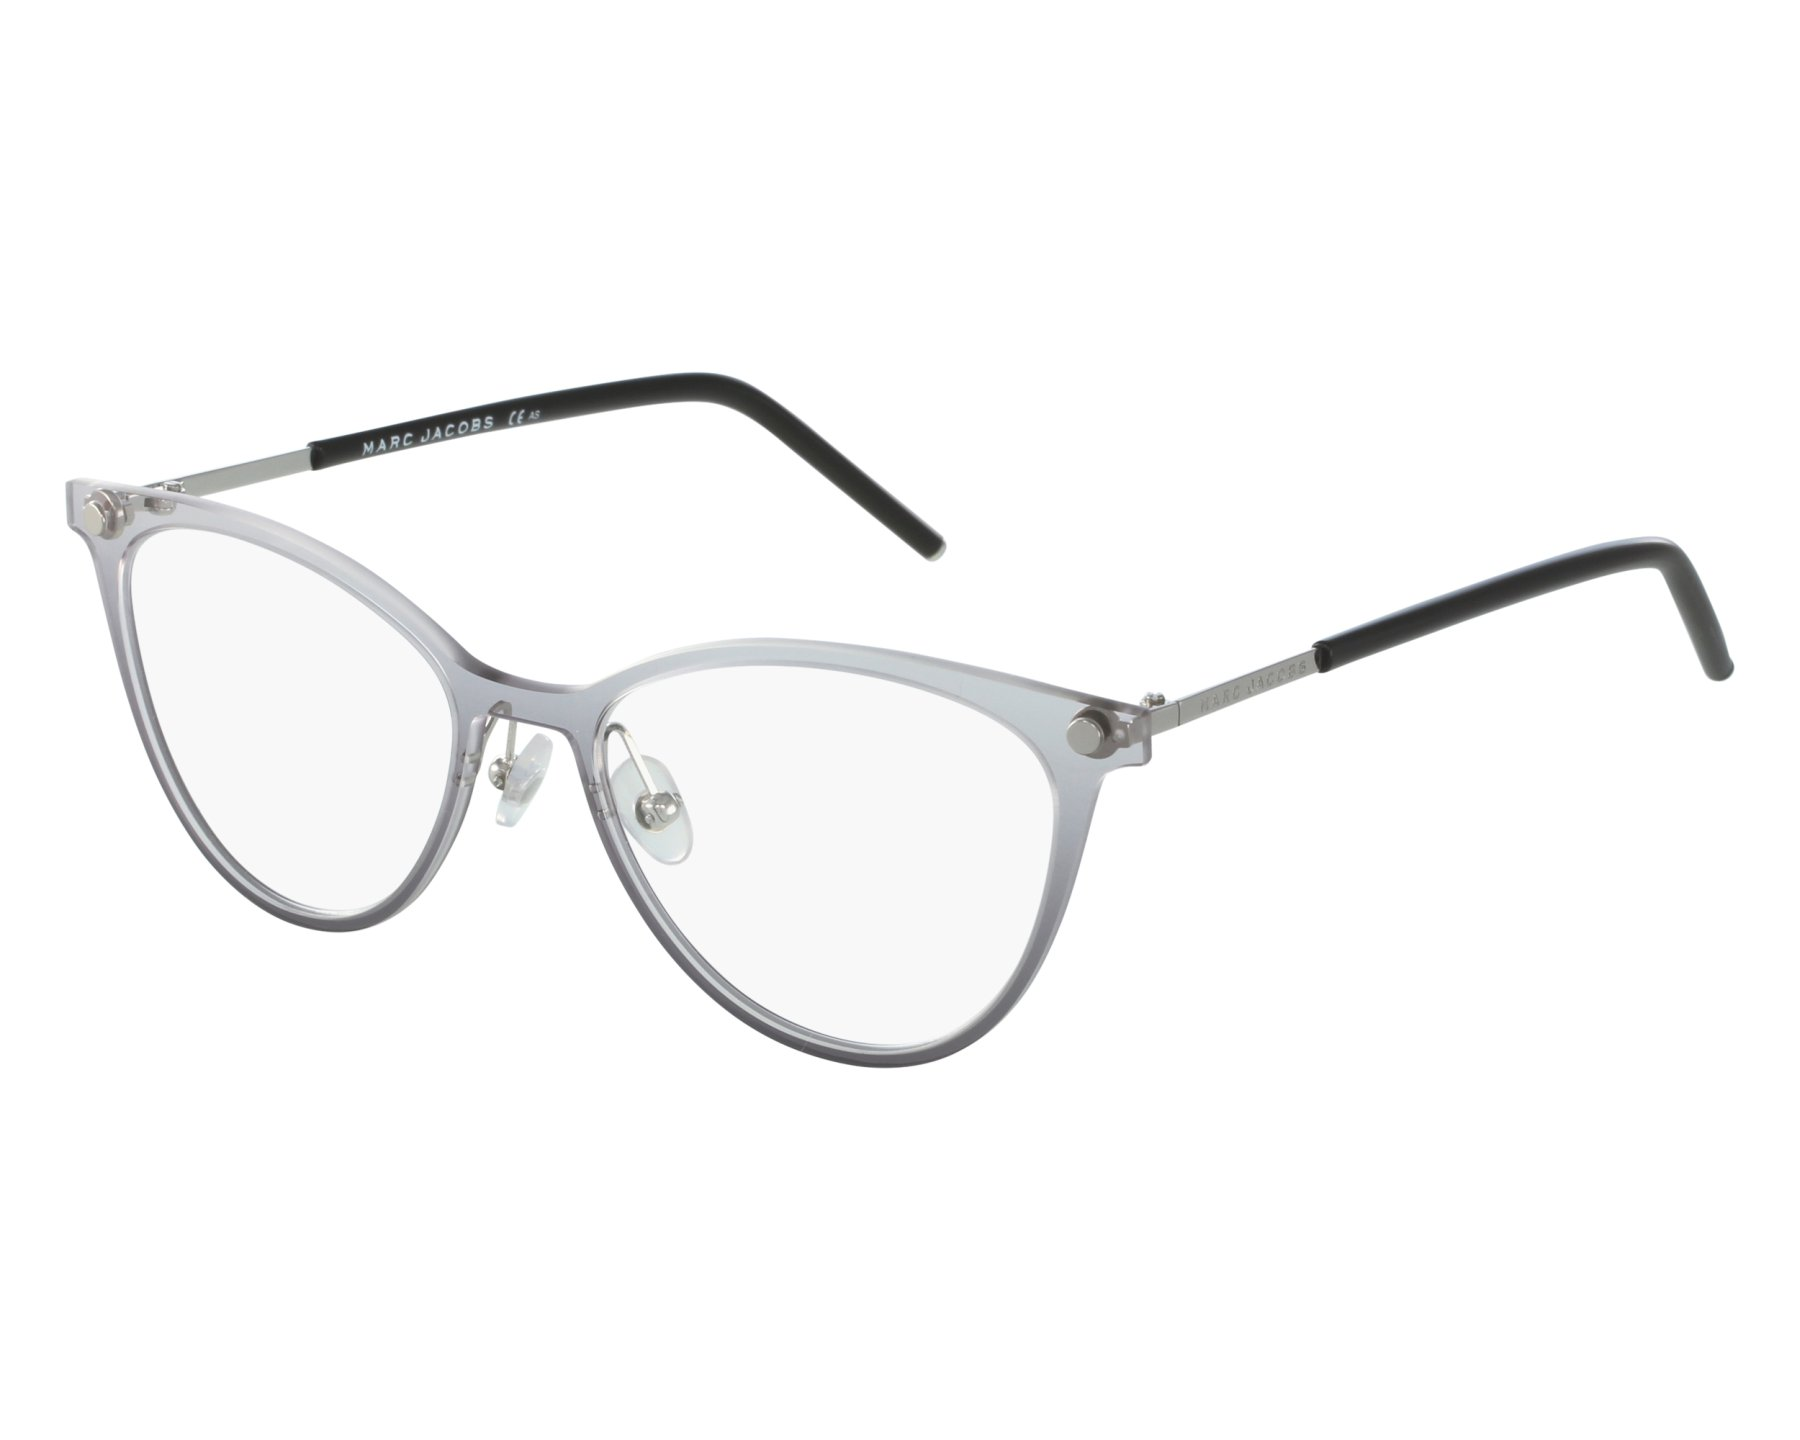 aaa3ca4a888 eyeglasses Marc Jacobs MARC-32 732 - Grey Black front view